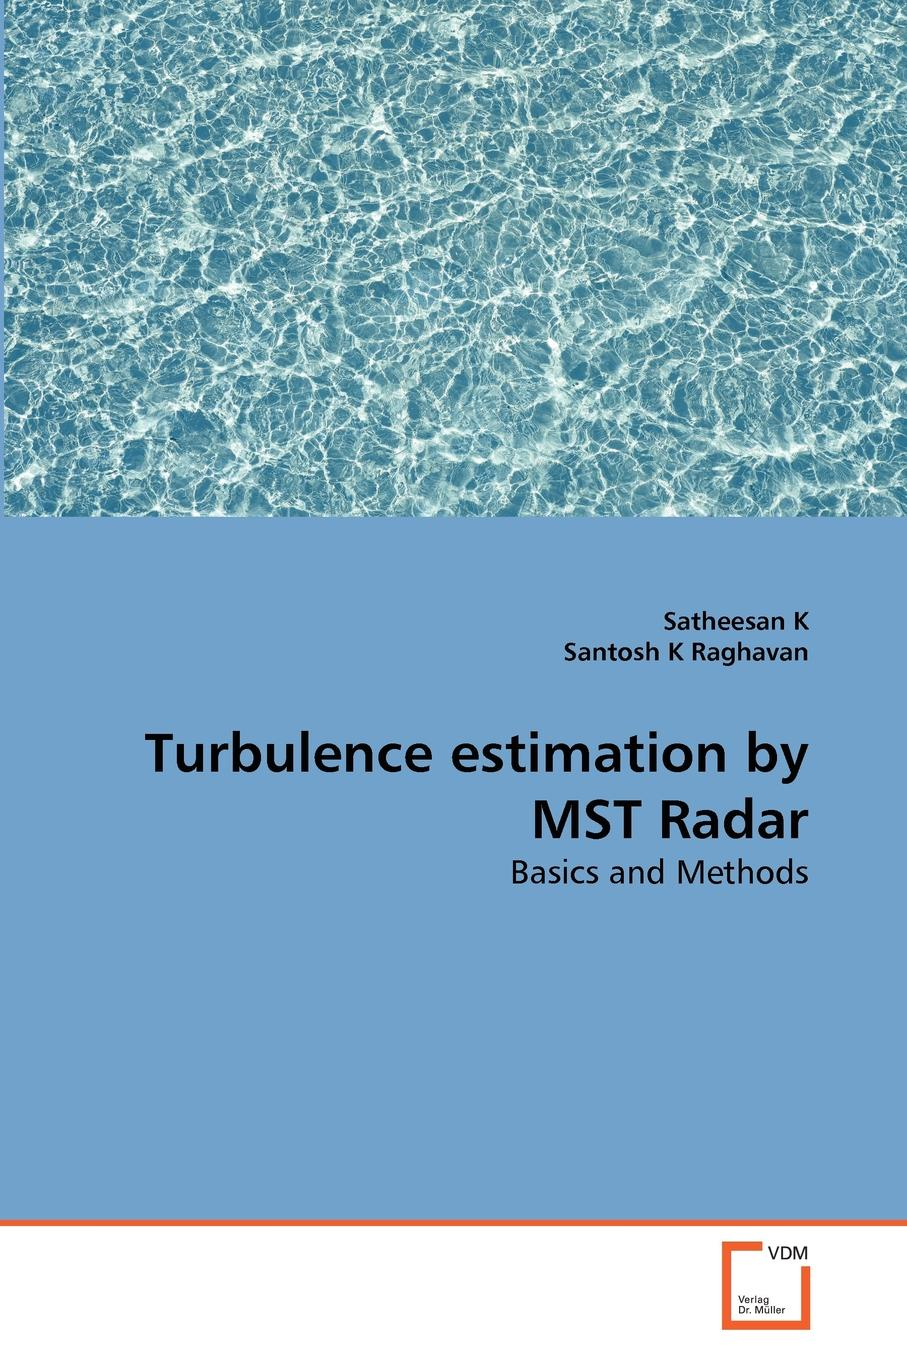 лучшая цена Satheesan K, Santosh K Raghavan Turbulence estimation by MST Radar